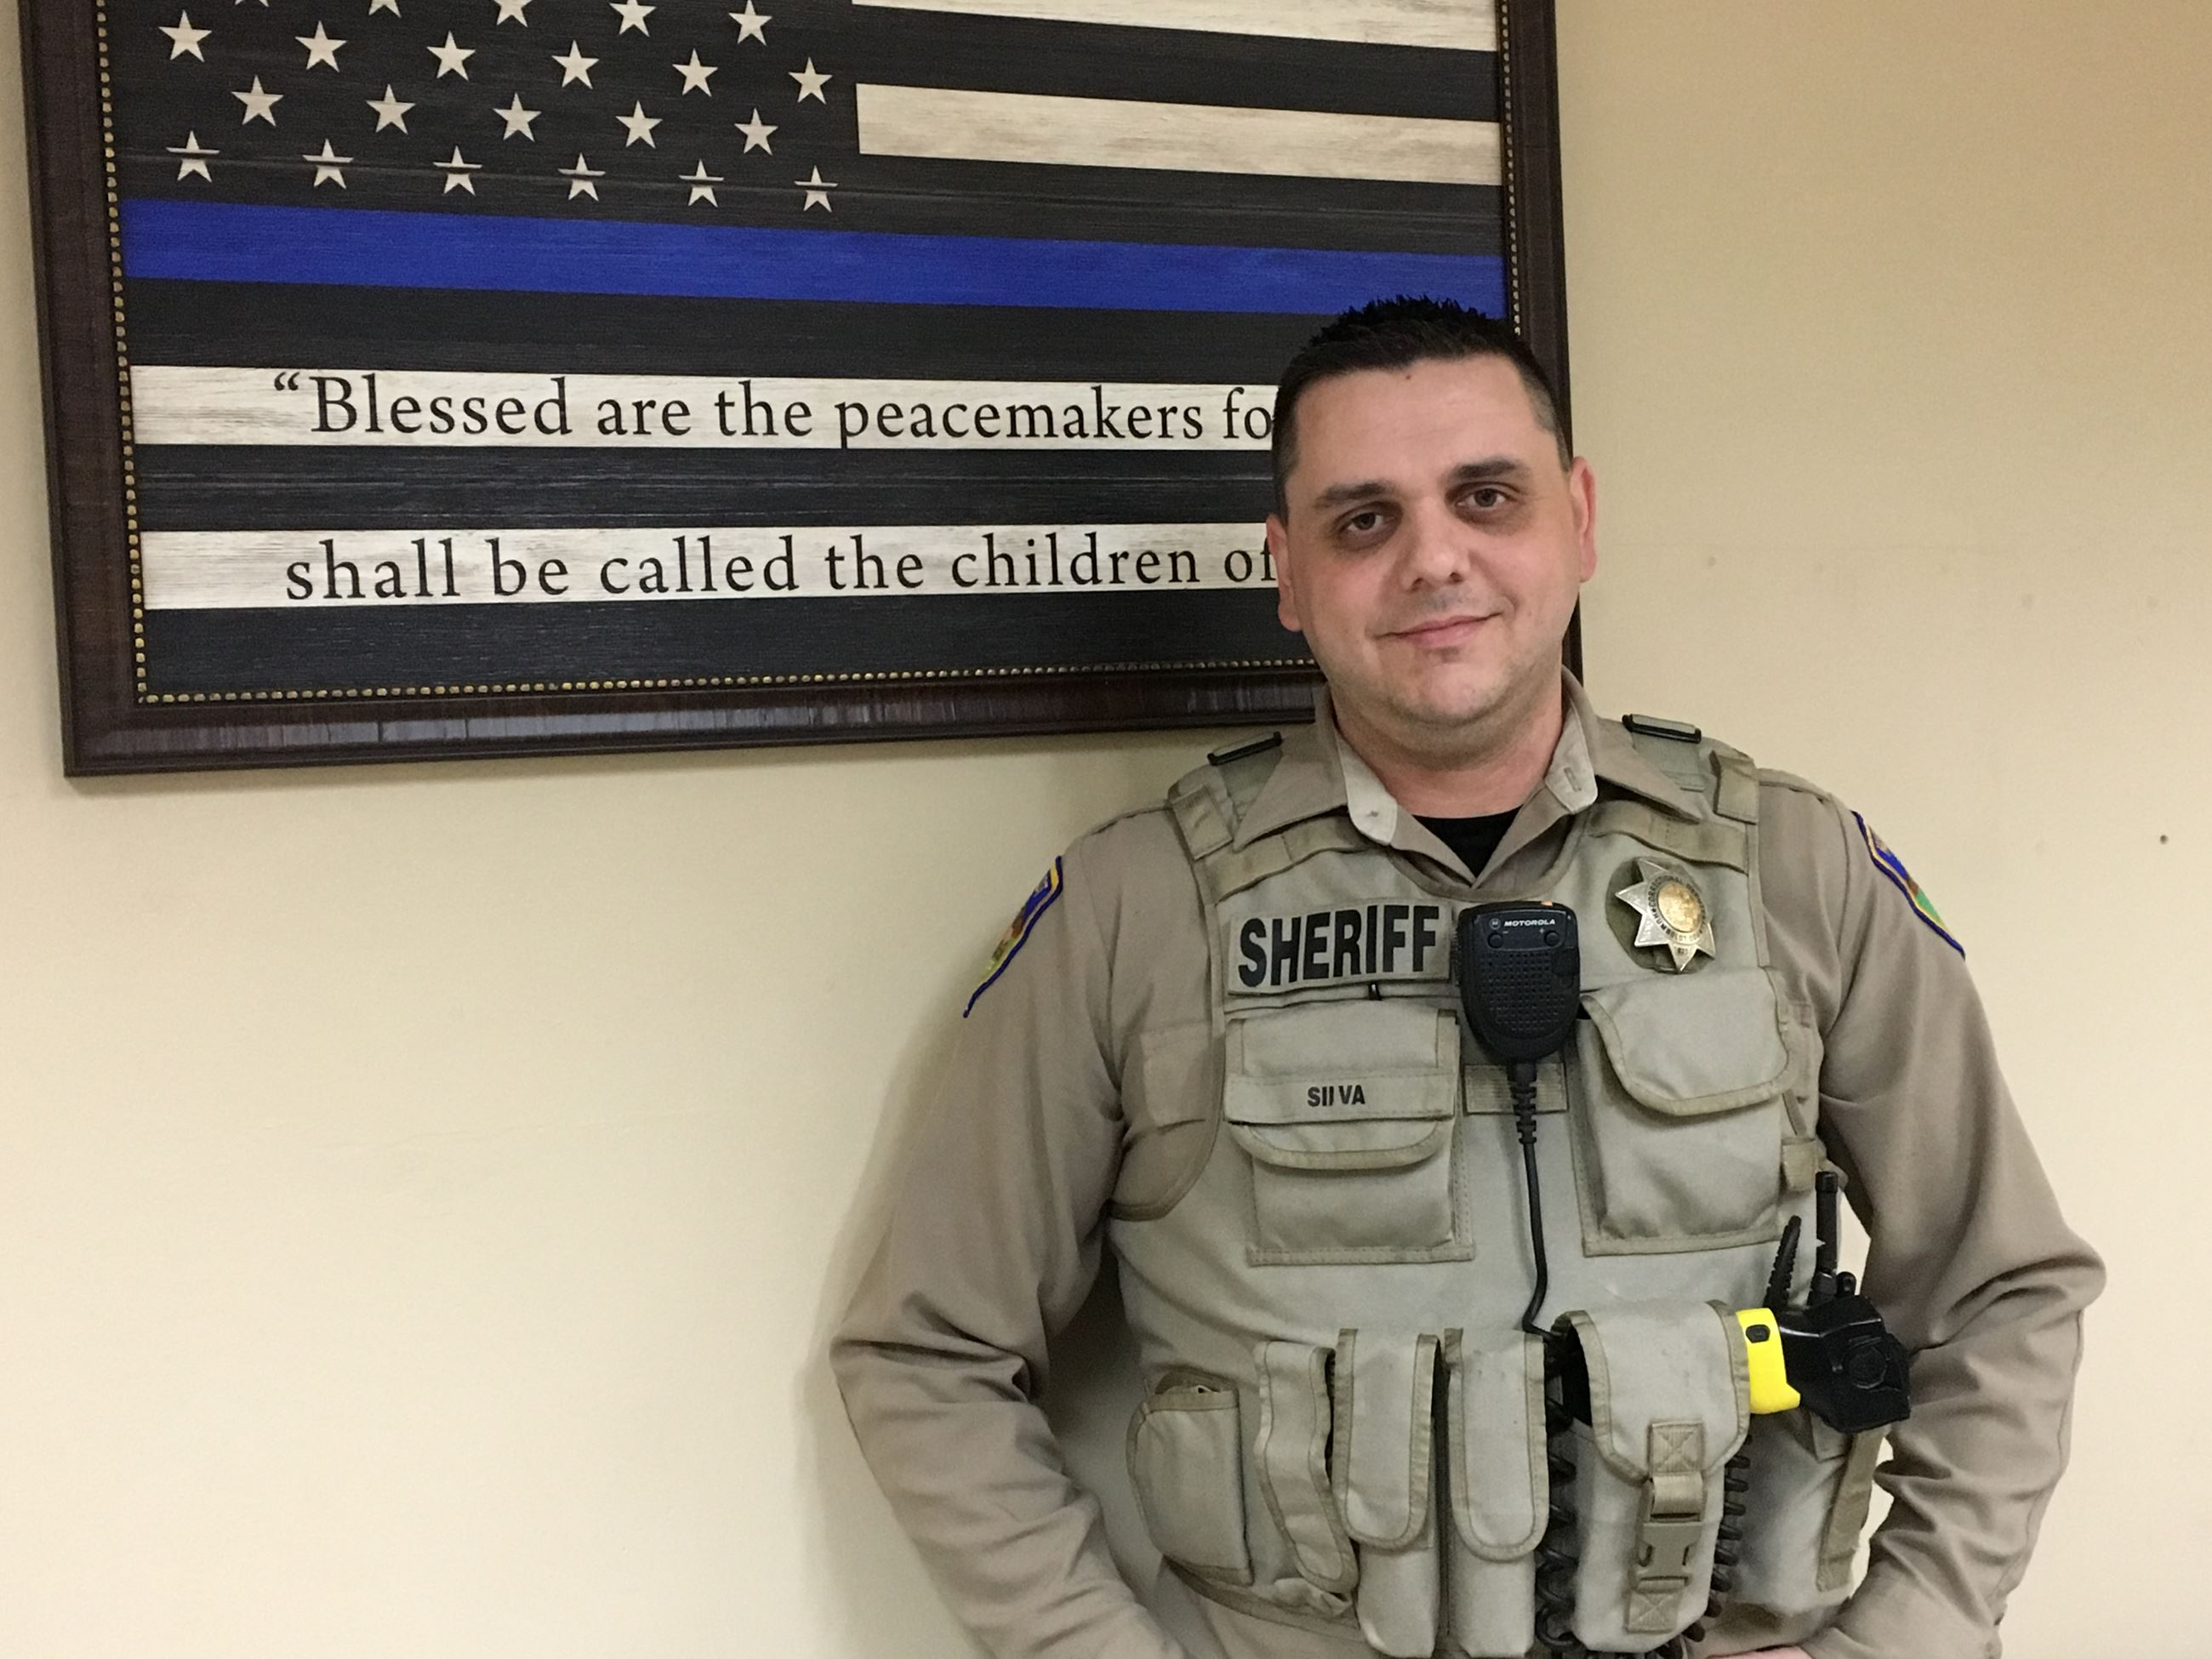 Correctional Deputy Silva in front of a thin blue line flag